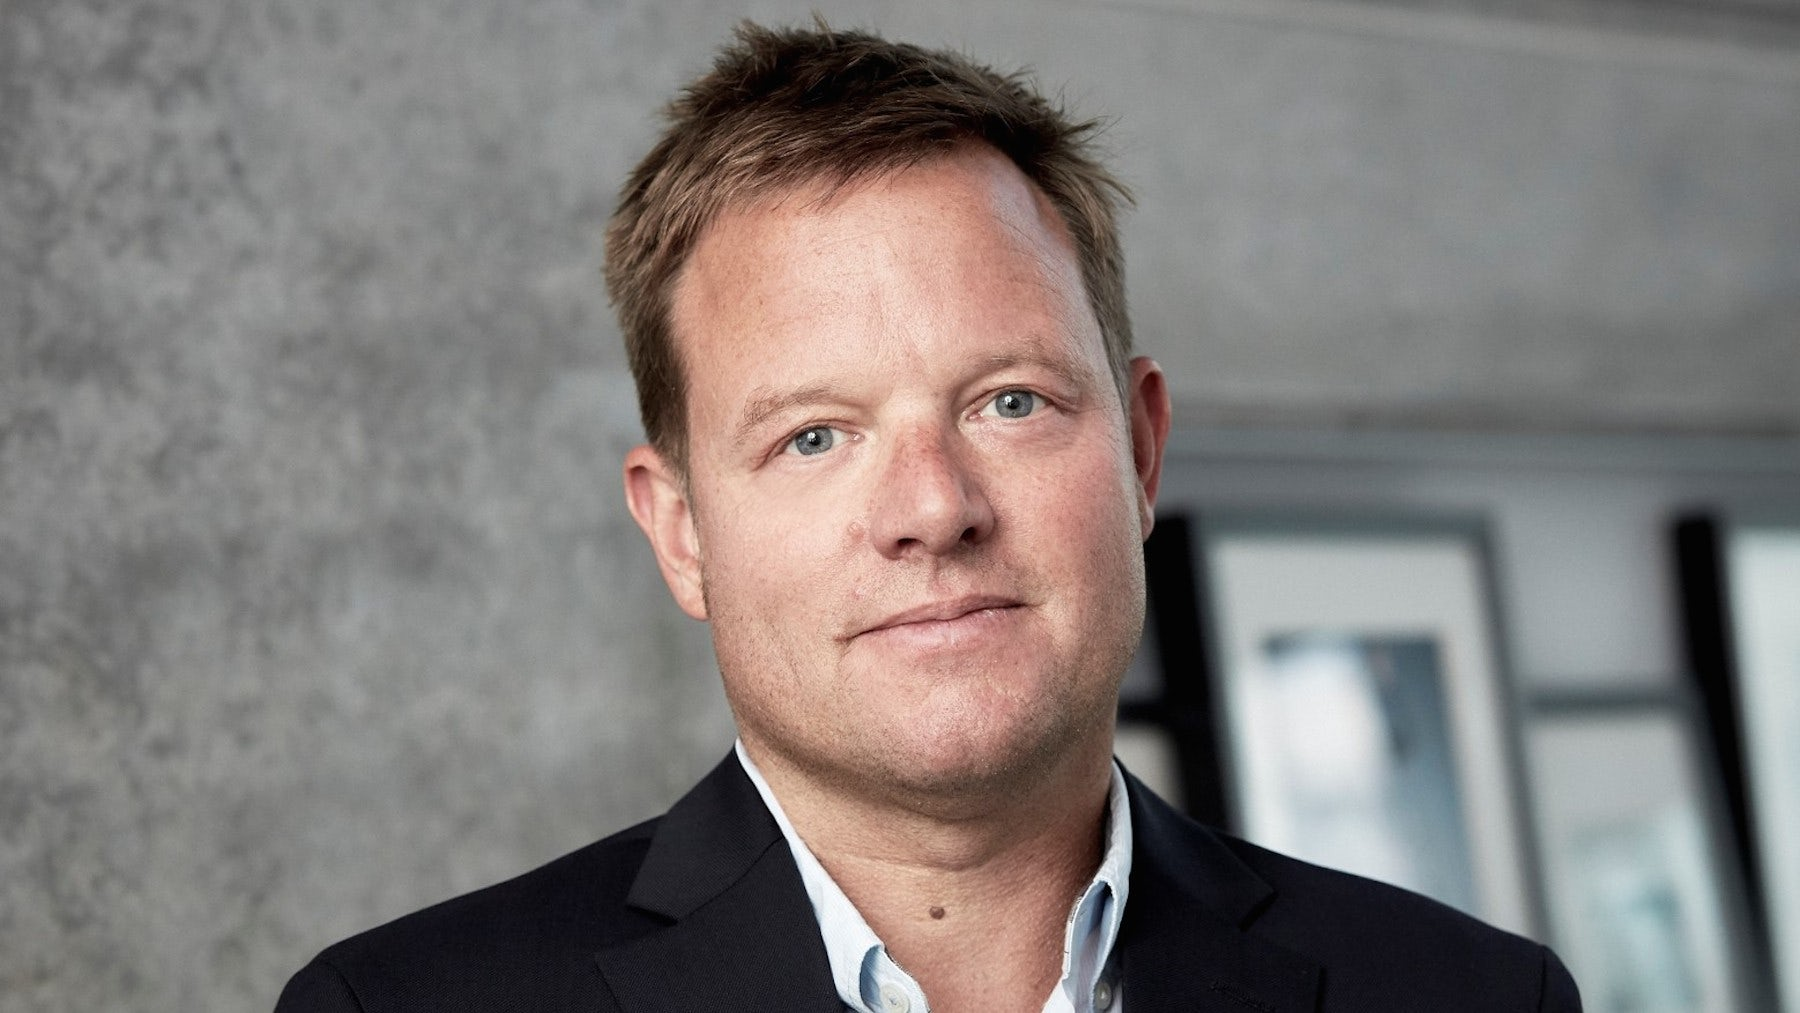 Jens Riewenherm, managing director at Mytheresa.com | Source: Courtesy